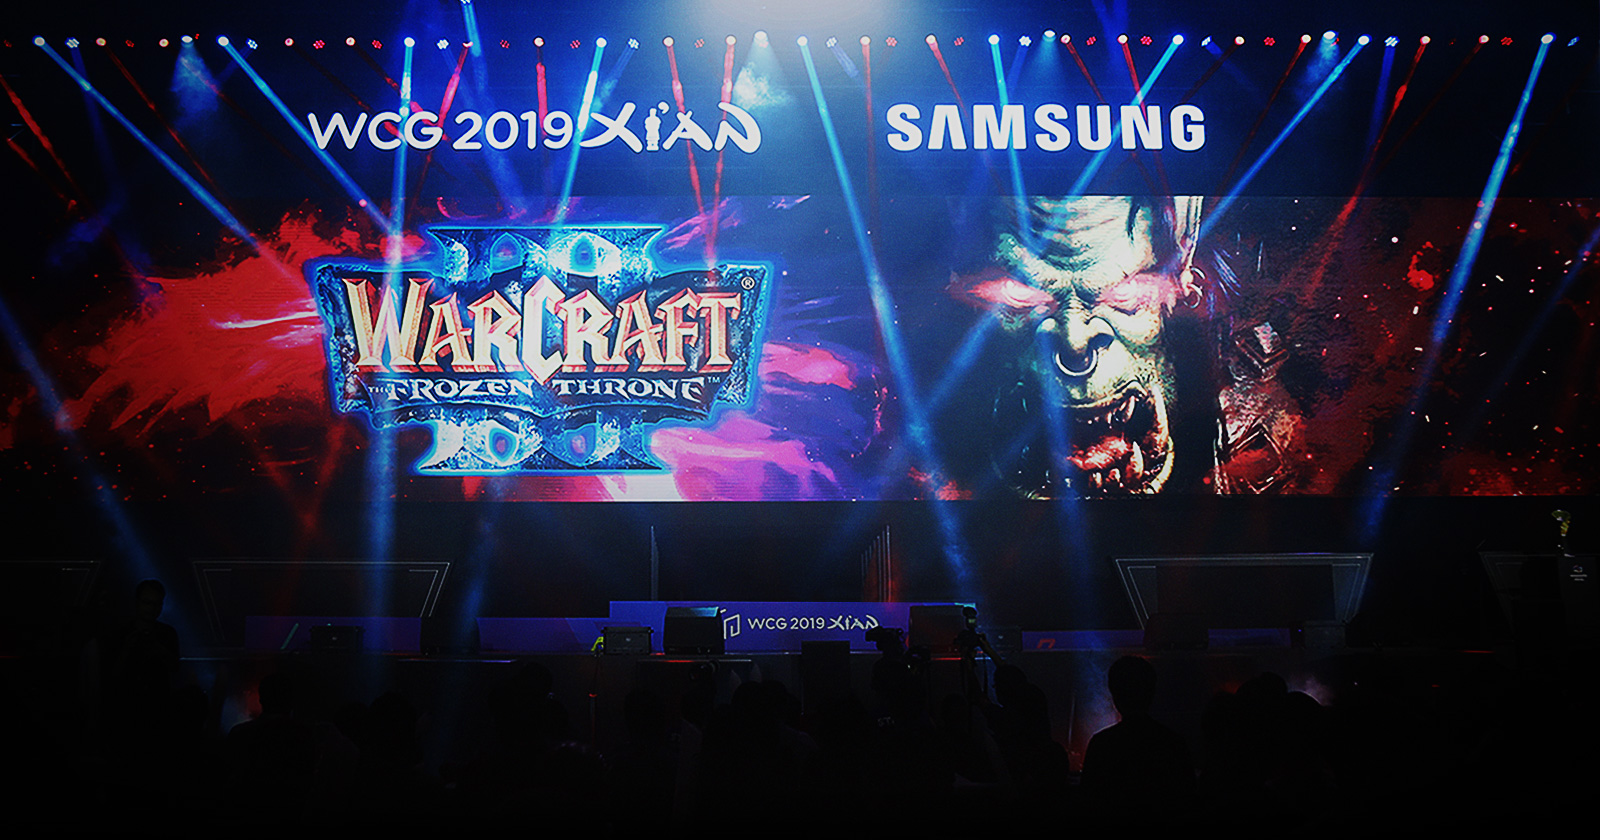 WCG_eSports_Work_Detail_contents_1600x840_3-11321321